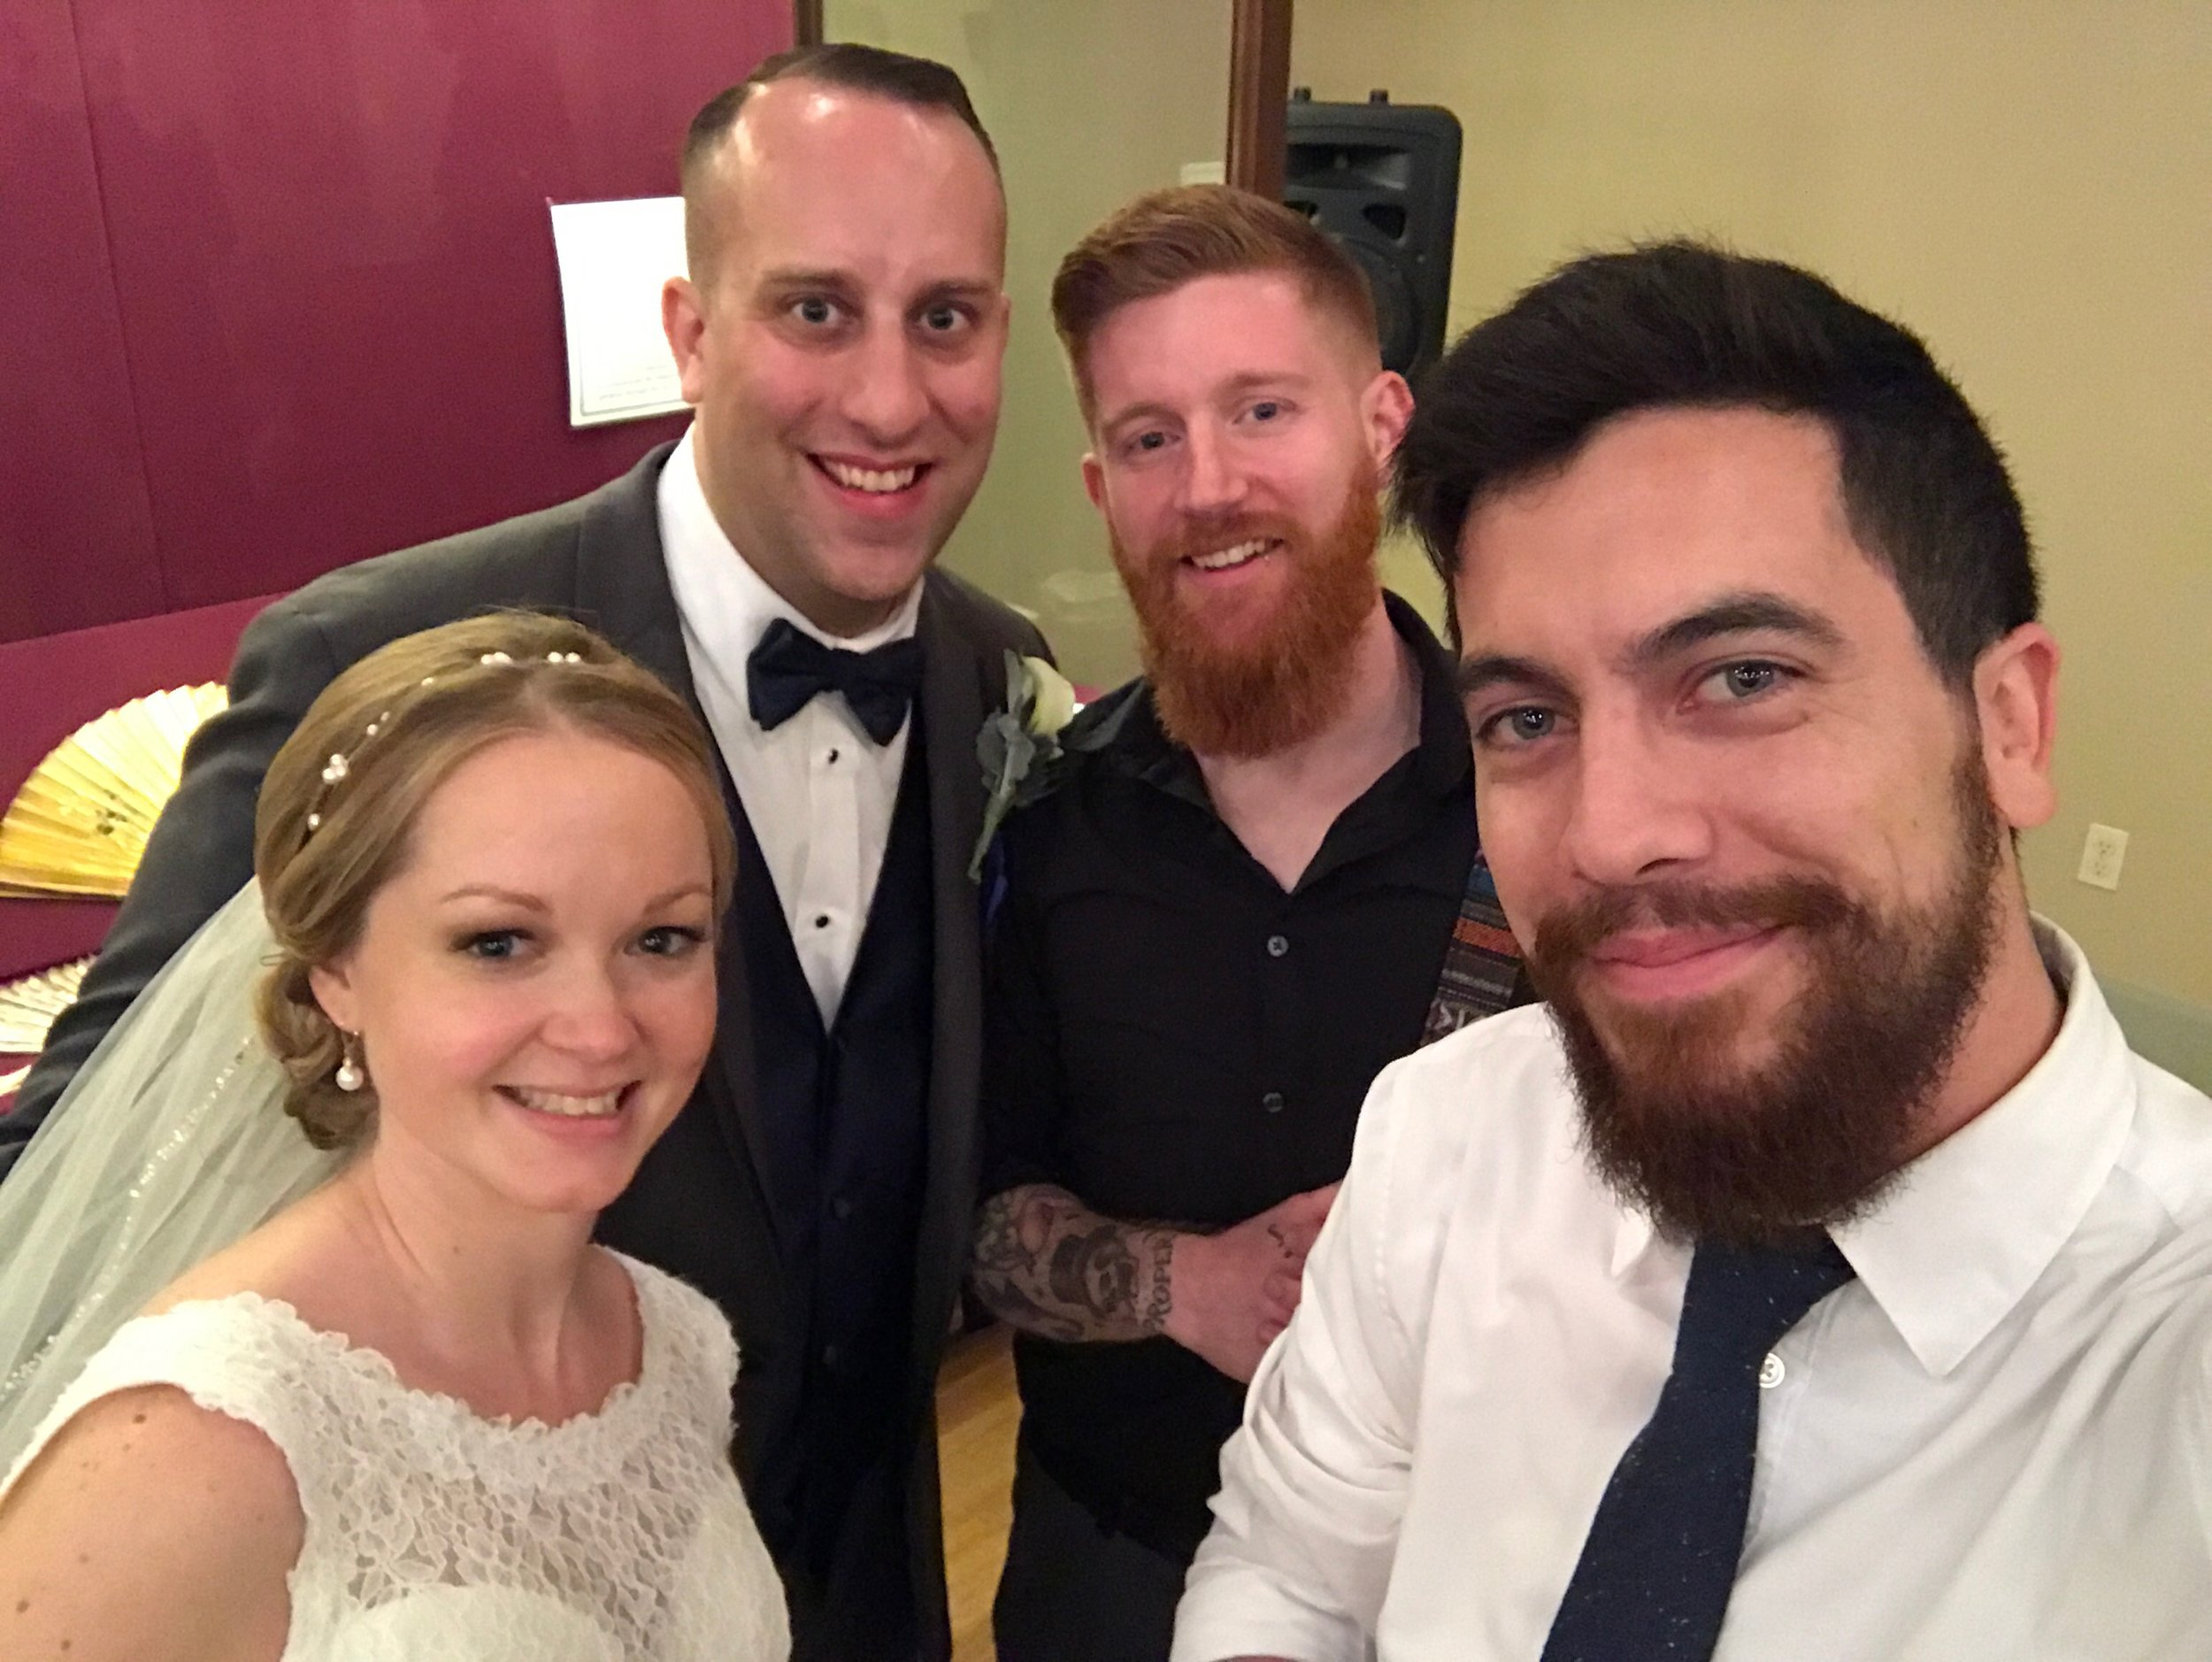 Jessica, Kevin, Phil Fusco (Wedding Photographer) and Me  Always gotta do the wedding selfie